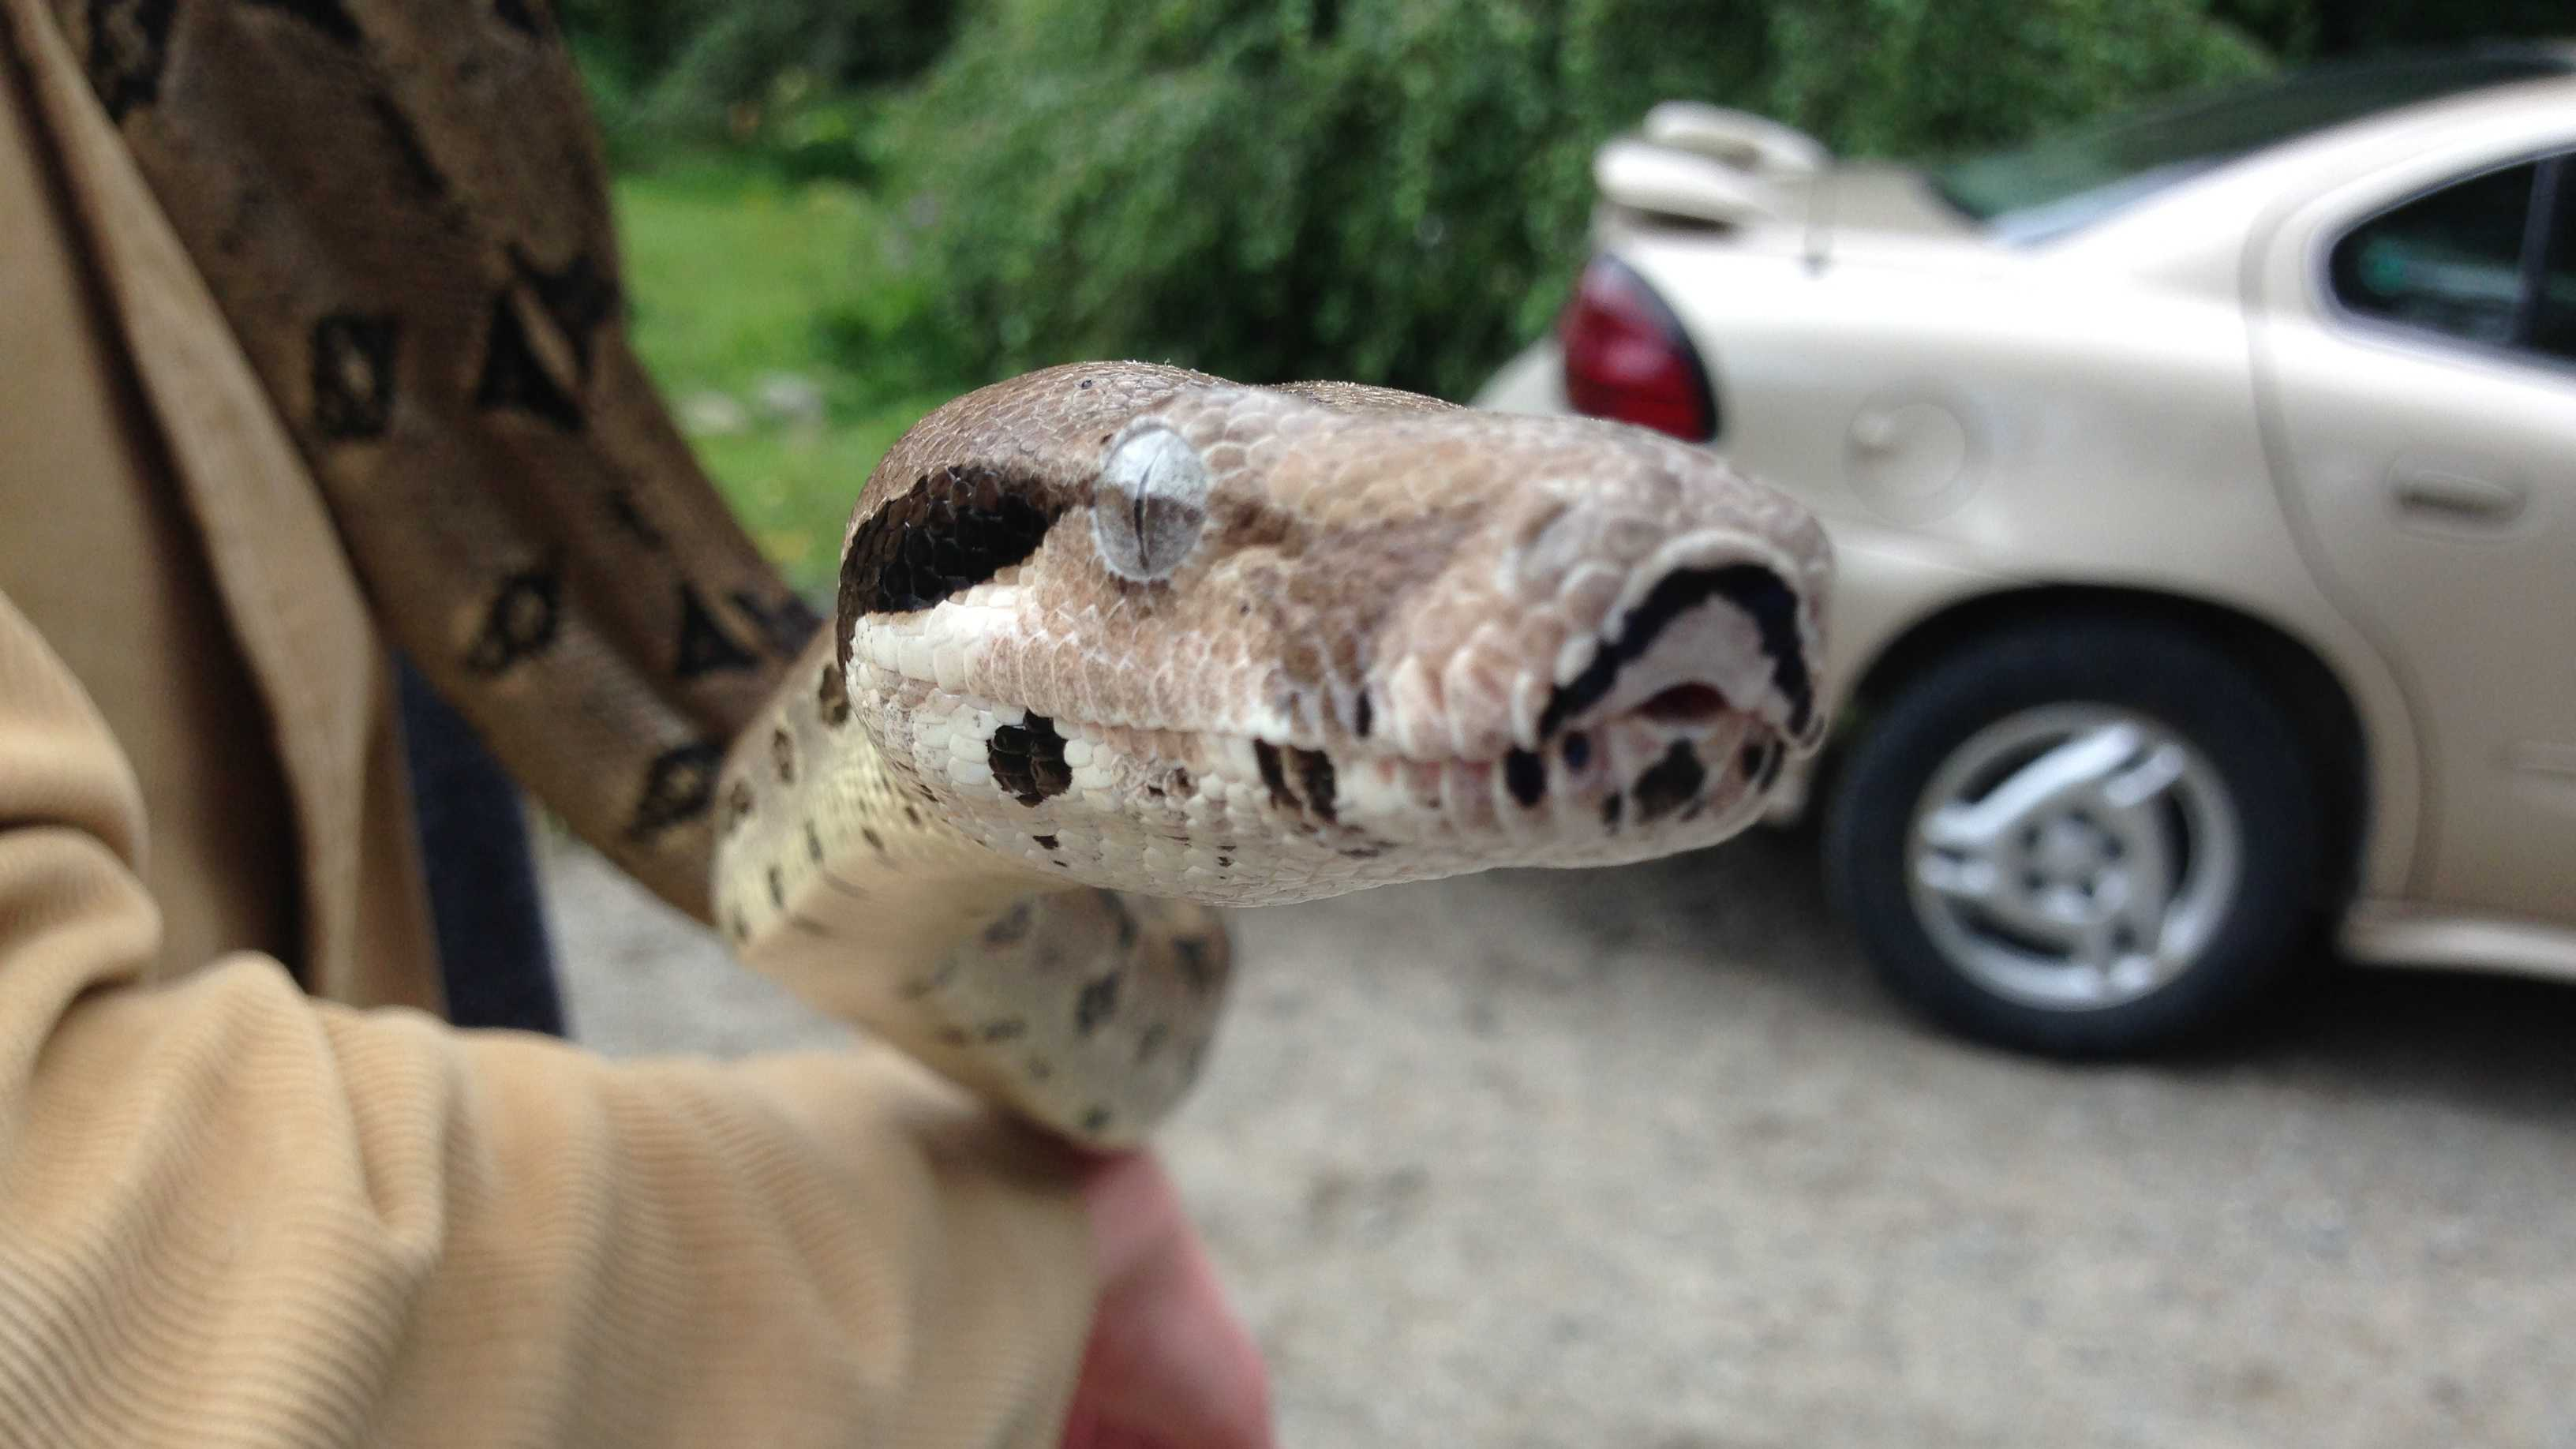 A 5-foot boa constrictor was discovered in Leddy Park's parking lot.